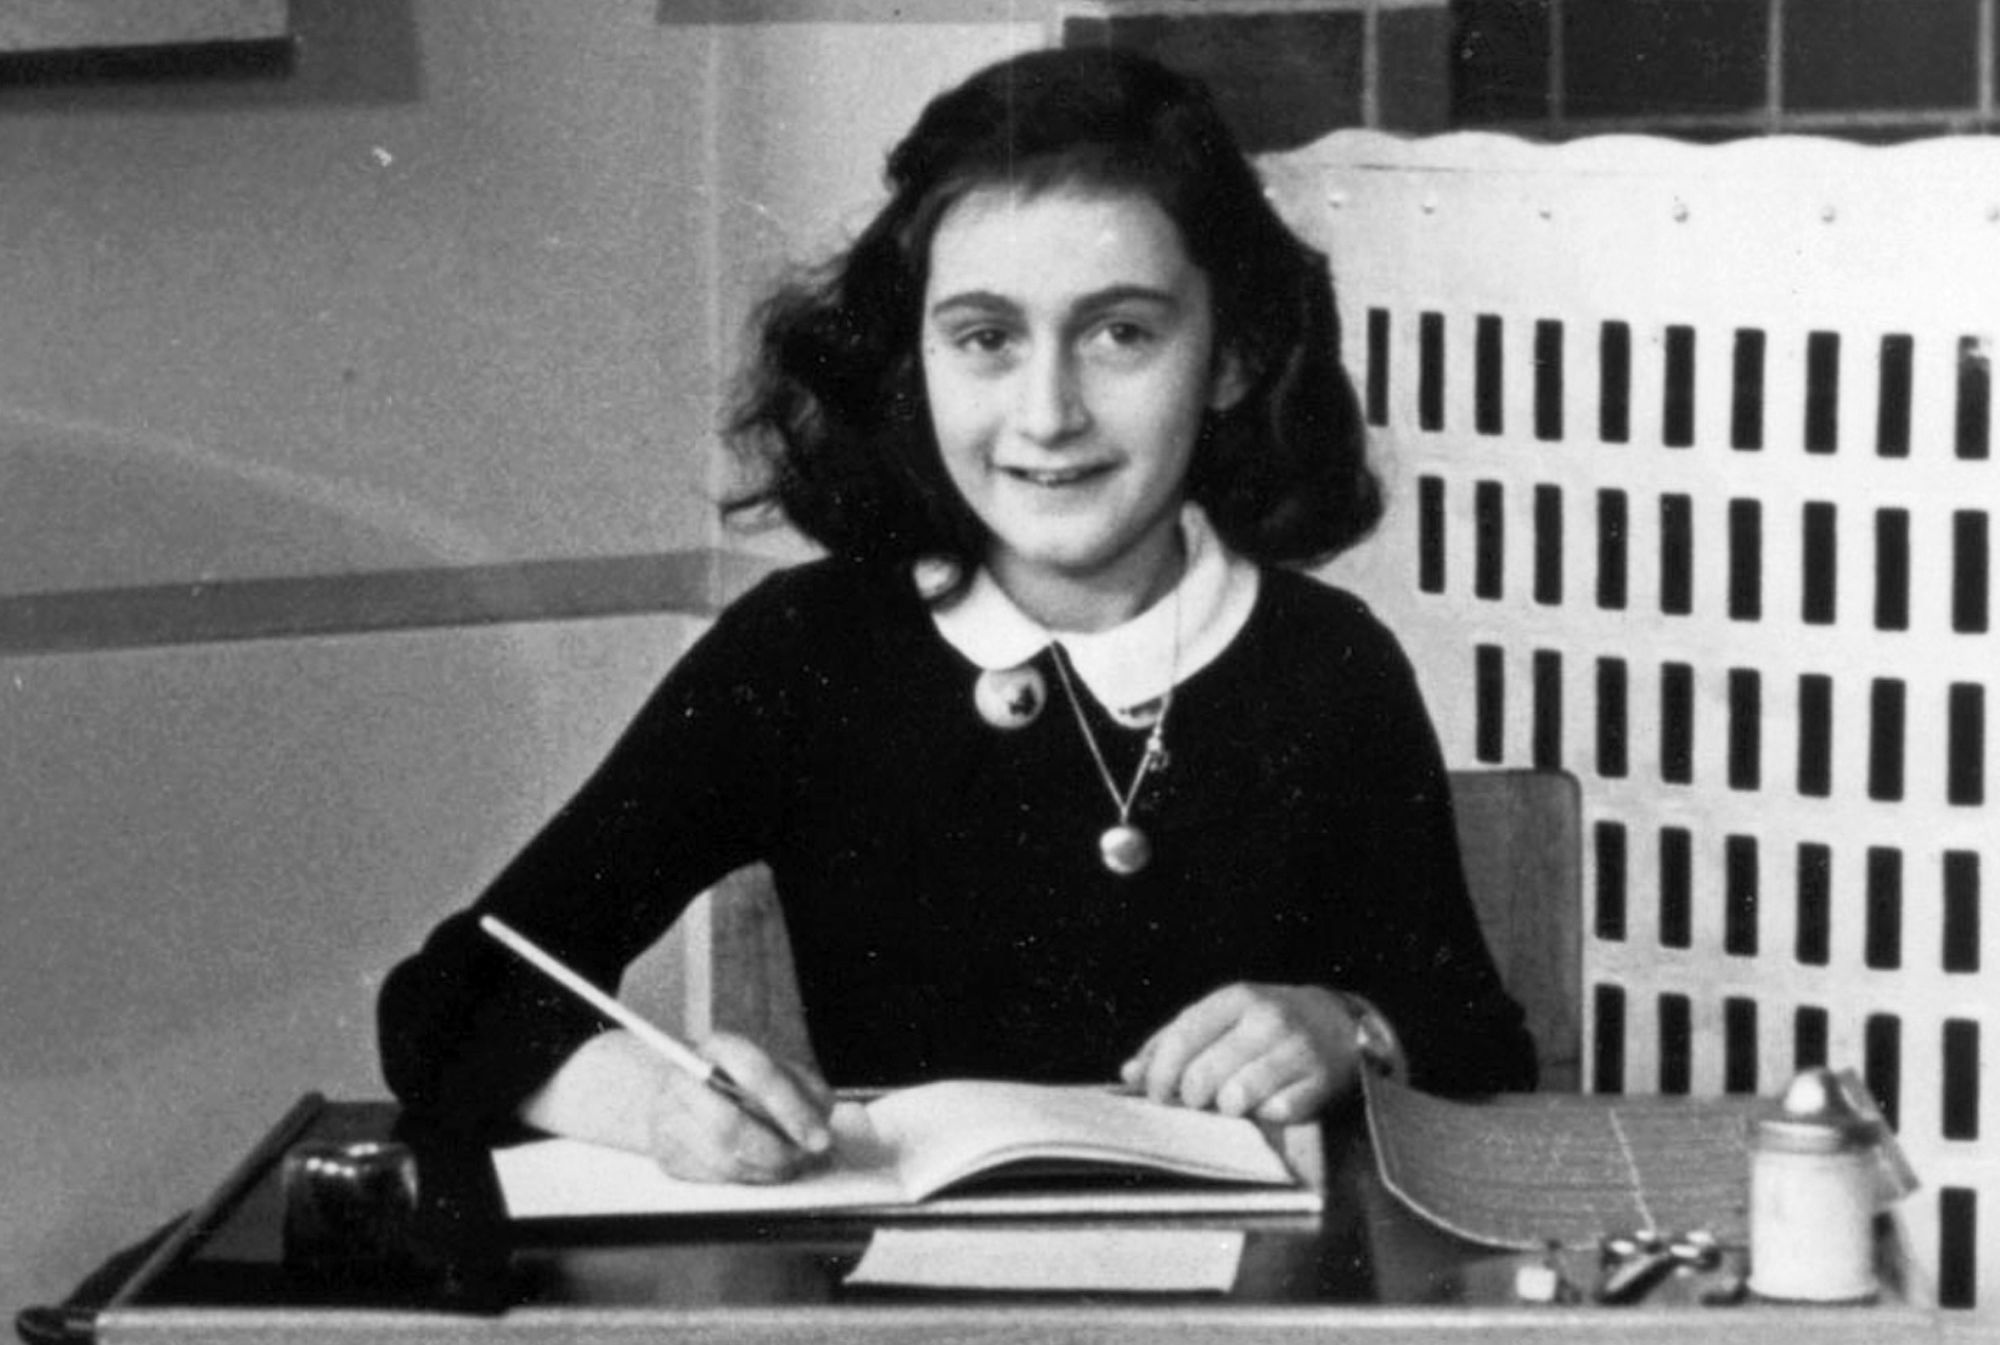 Diary of your escort experience